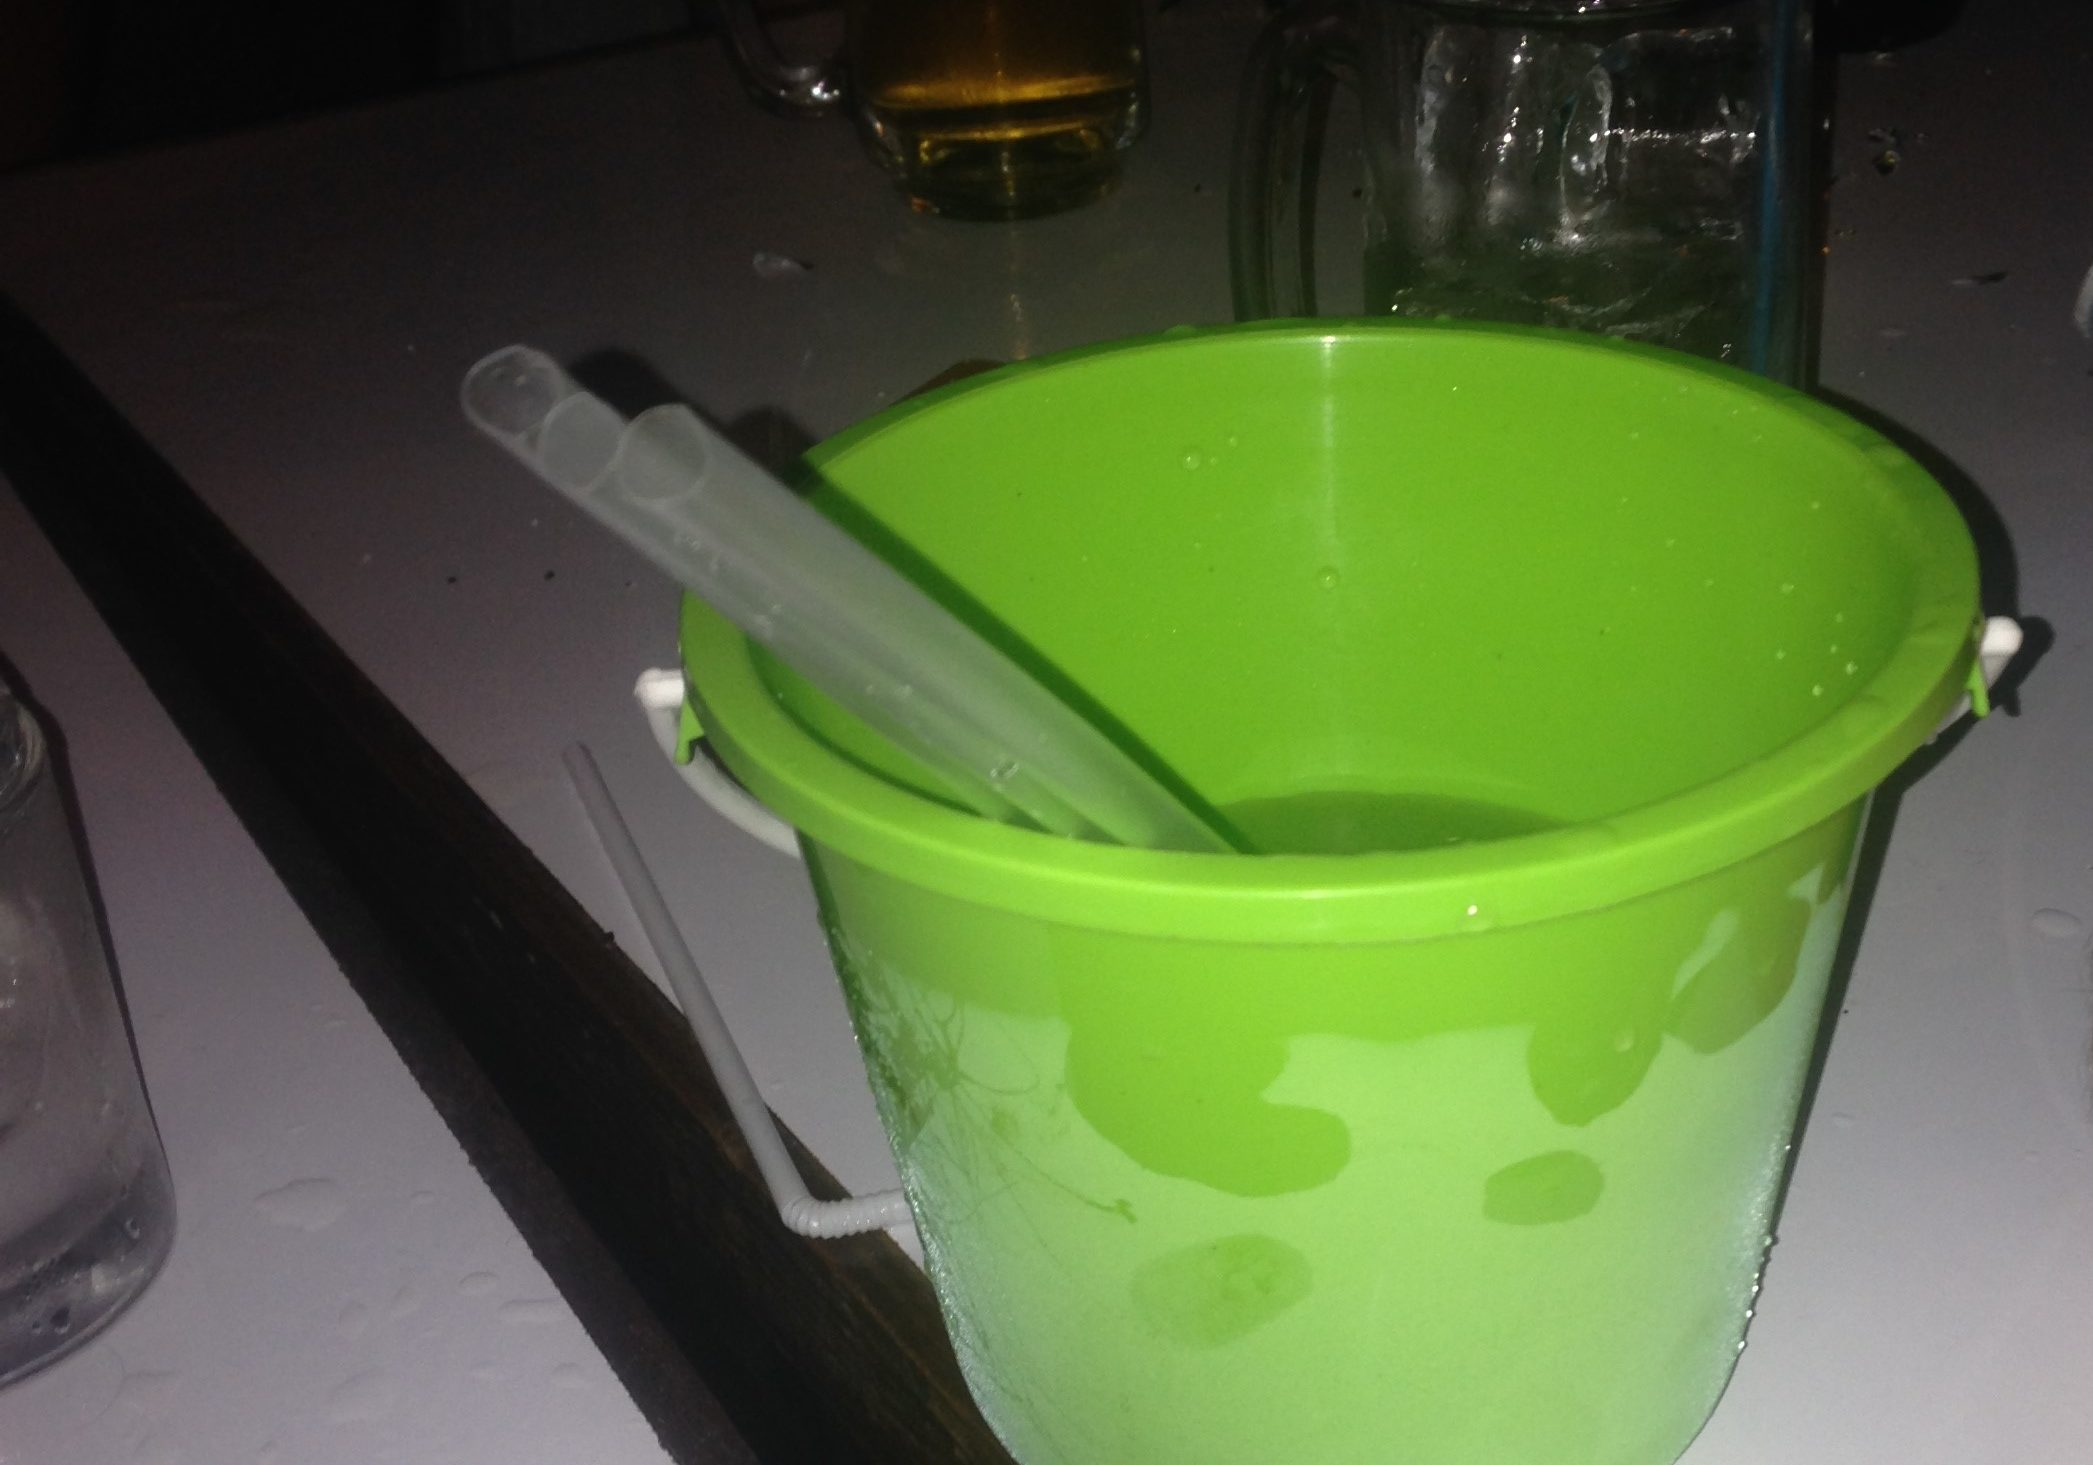 bucket, thailand, buckets, travels, travelling, backpacking, green, green bucket, alcohol, drinking sangsom,